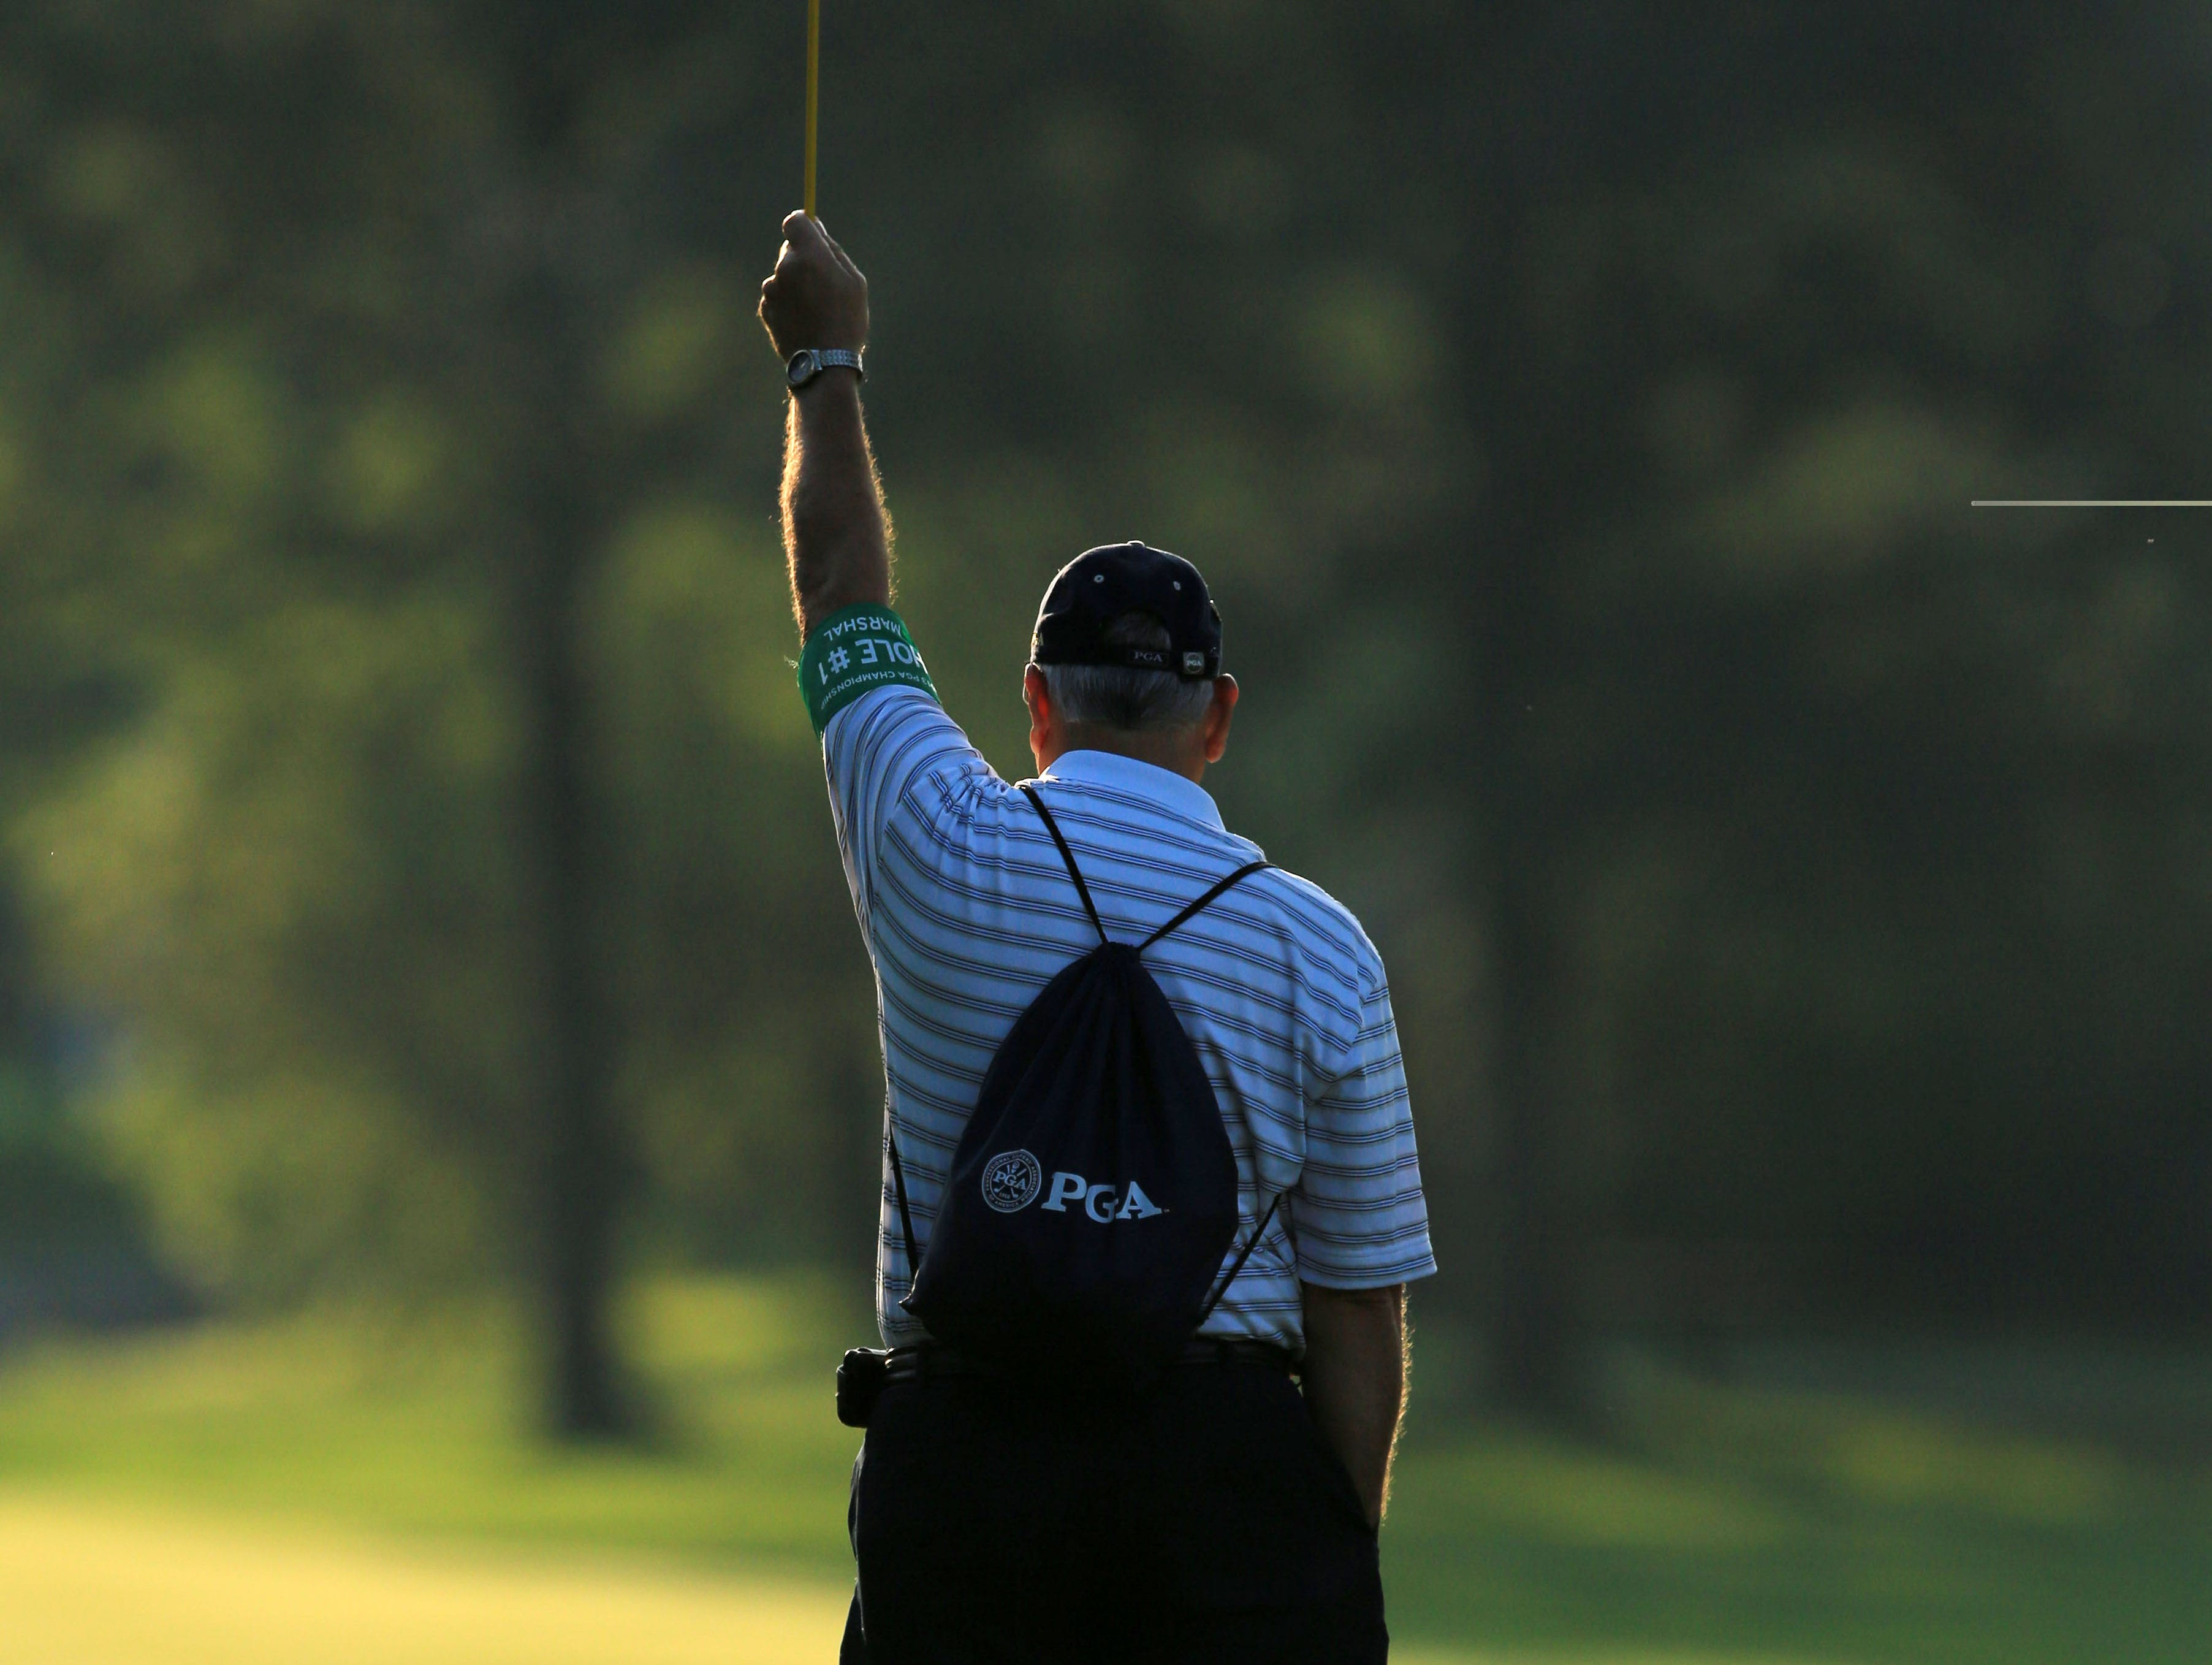 A marshall holds up a flag during the practice round of the 95th PGA Championship at Oak Hill Country Club.